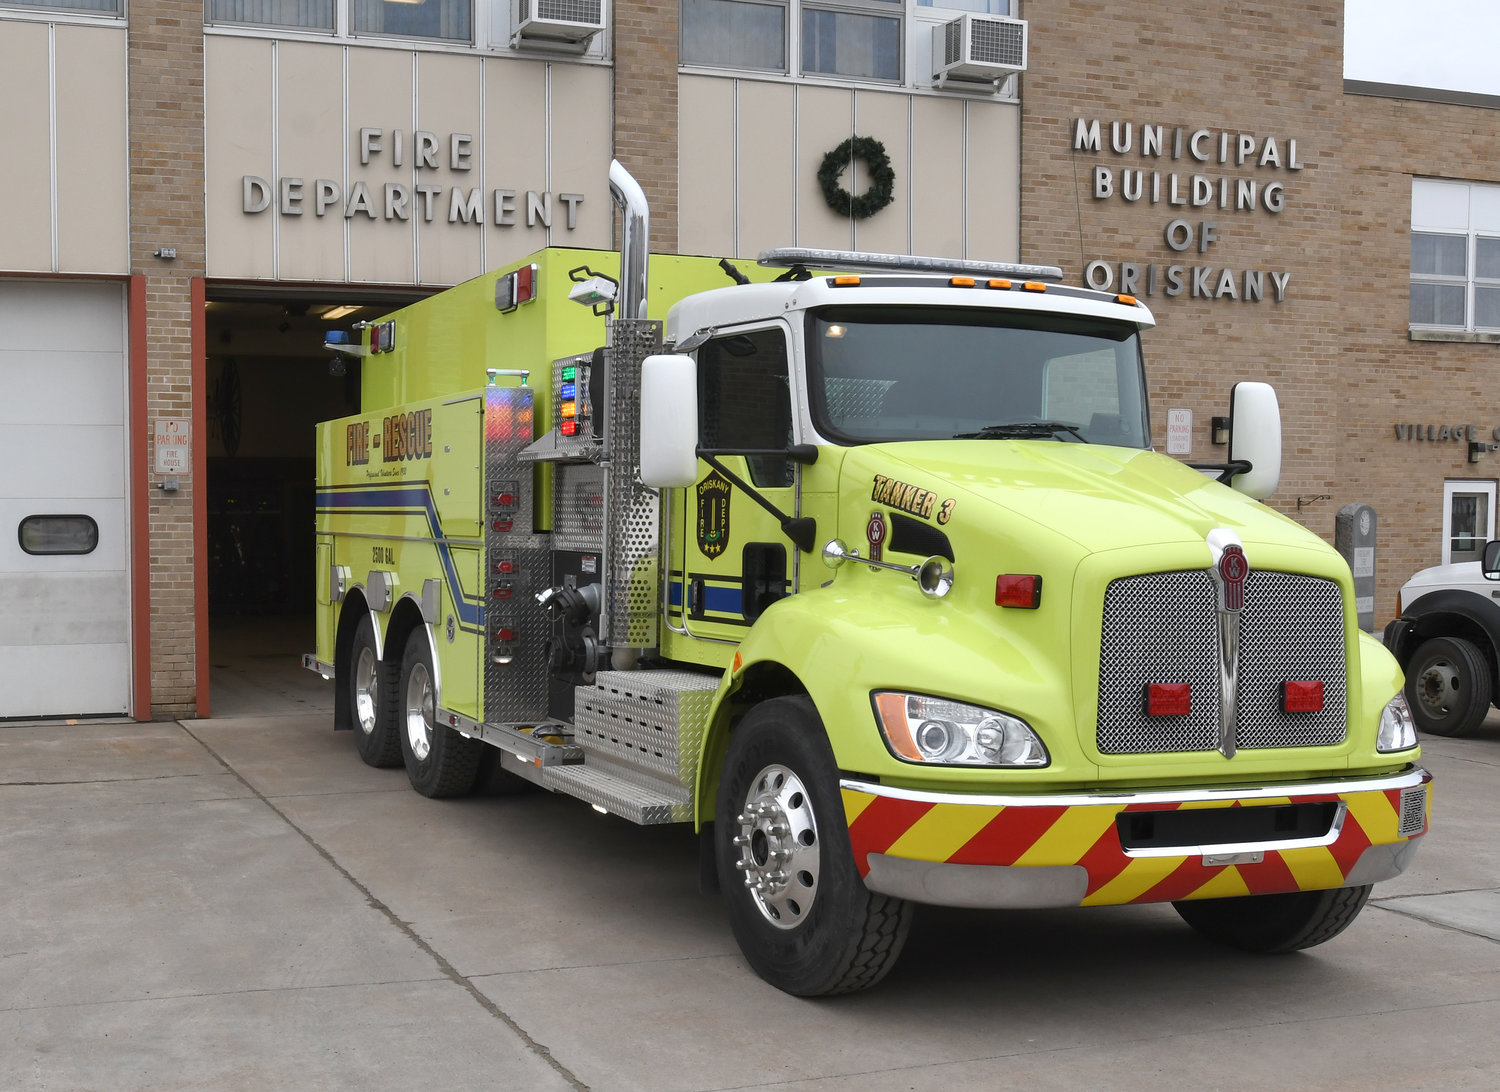 """BOBBY BOUCHER"" — The Oriskany Fire Department's new tanker/pumper truck is unveiled at the fire station. Oriskany Fire Chief Jeffrey Burkhart said the new truck is nicknamed ""Bobby Boucher"" after the main character in the 1998 film ""The Waterboy."""